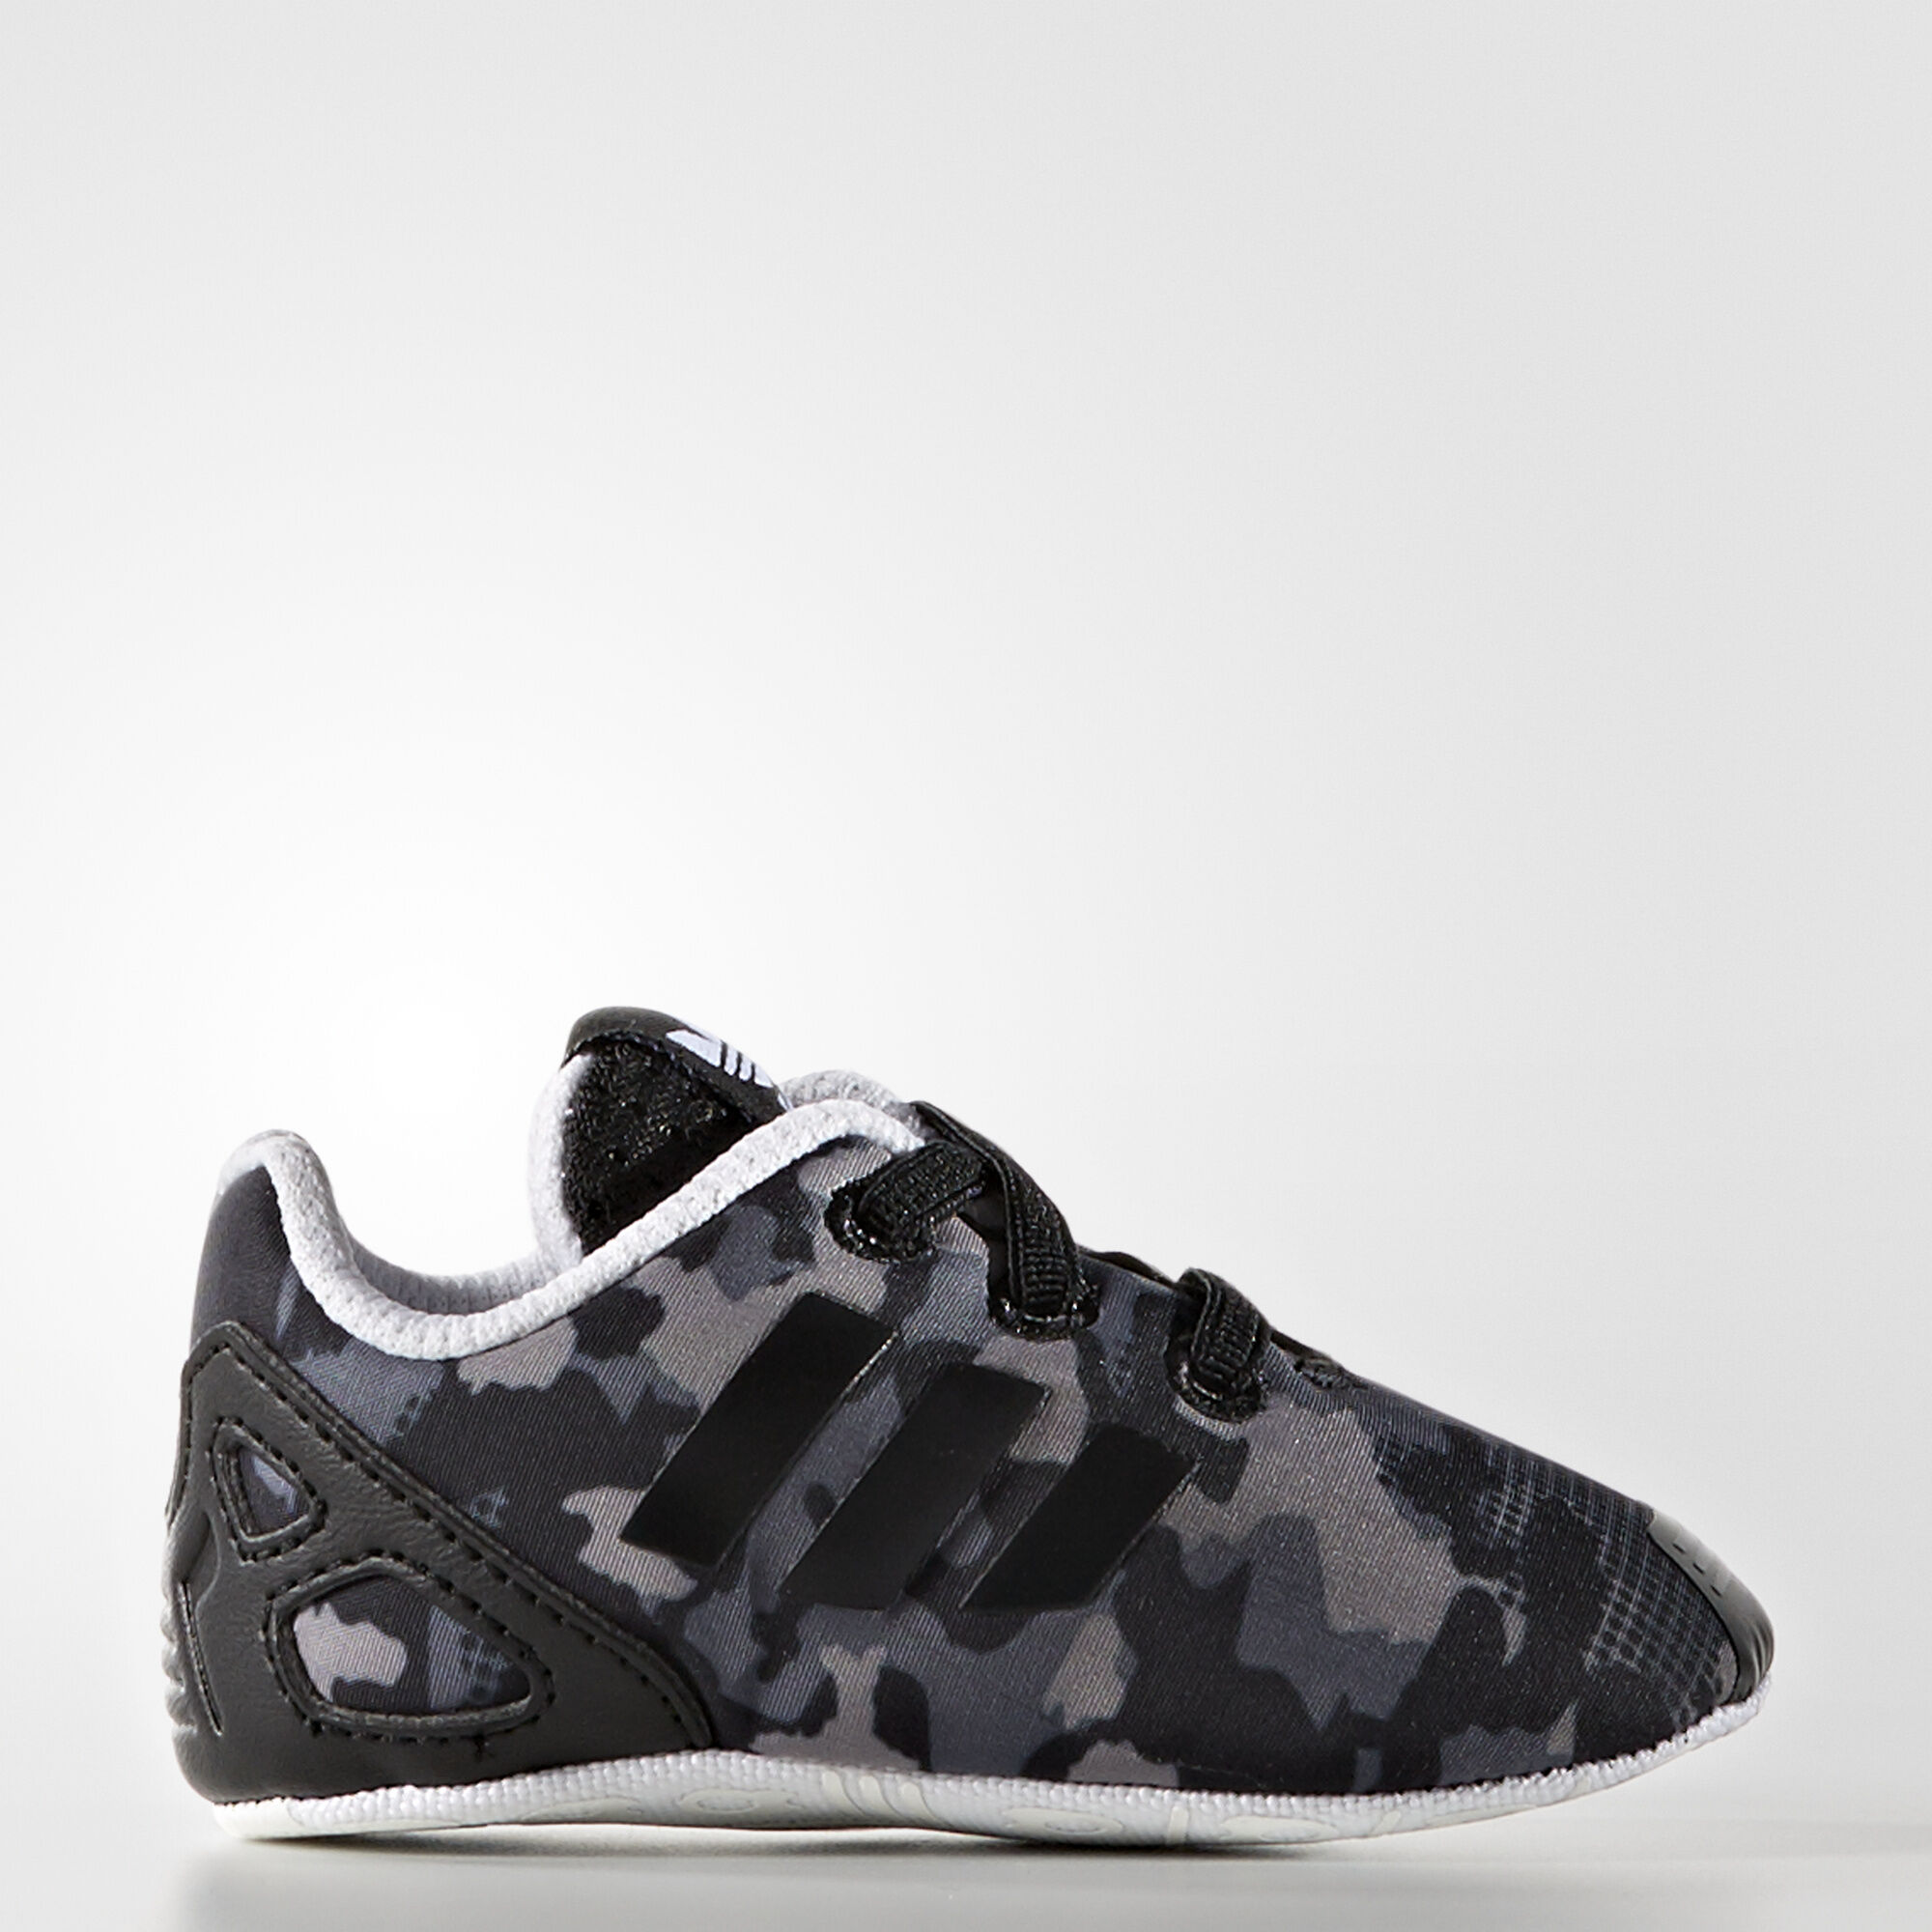 adidas dragon marrone